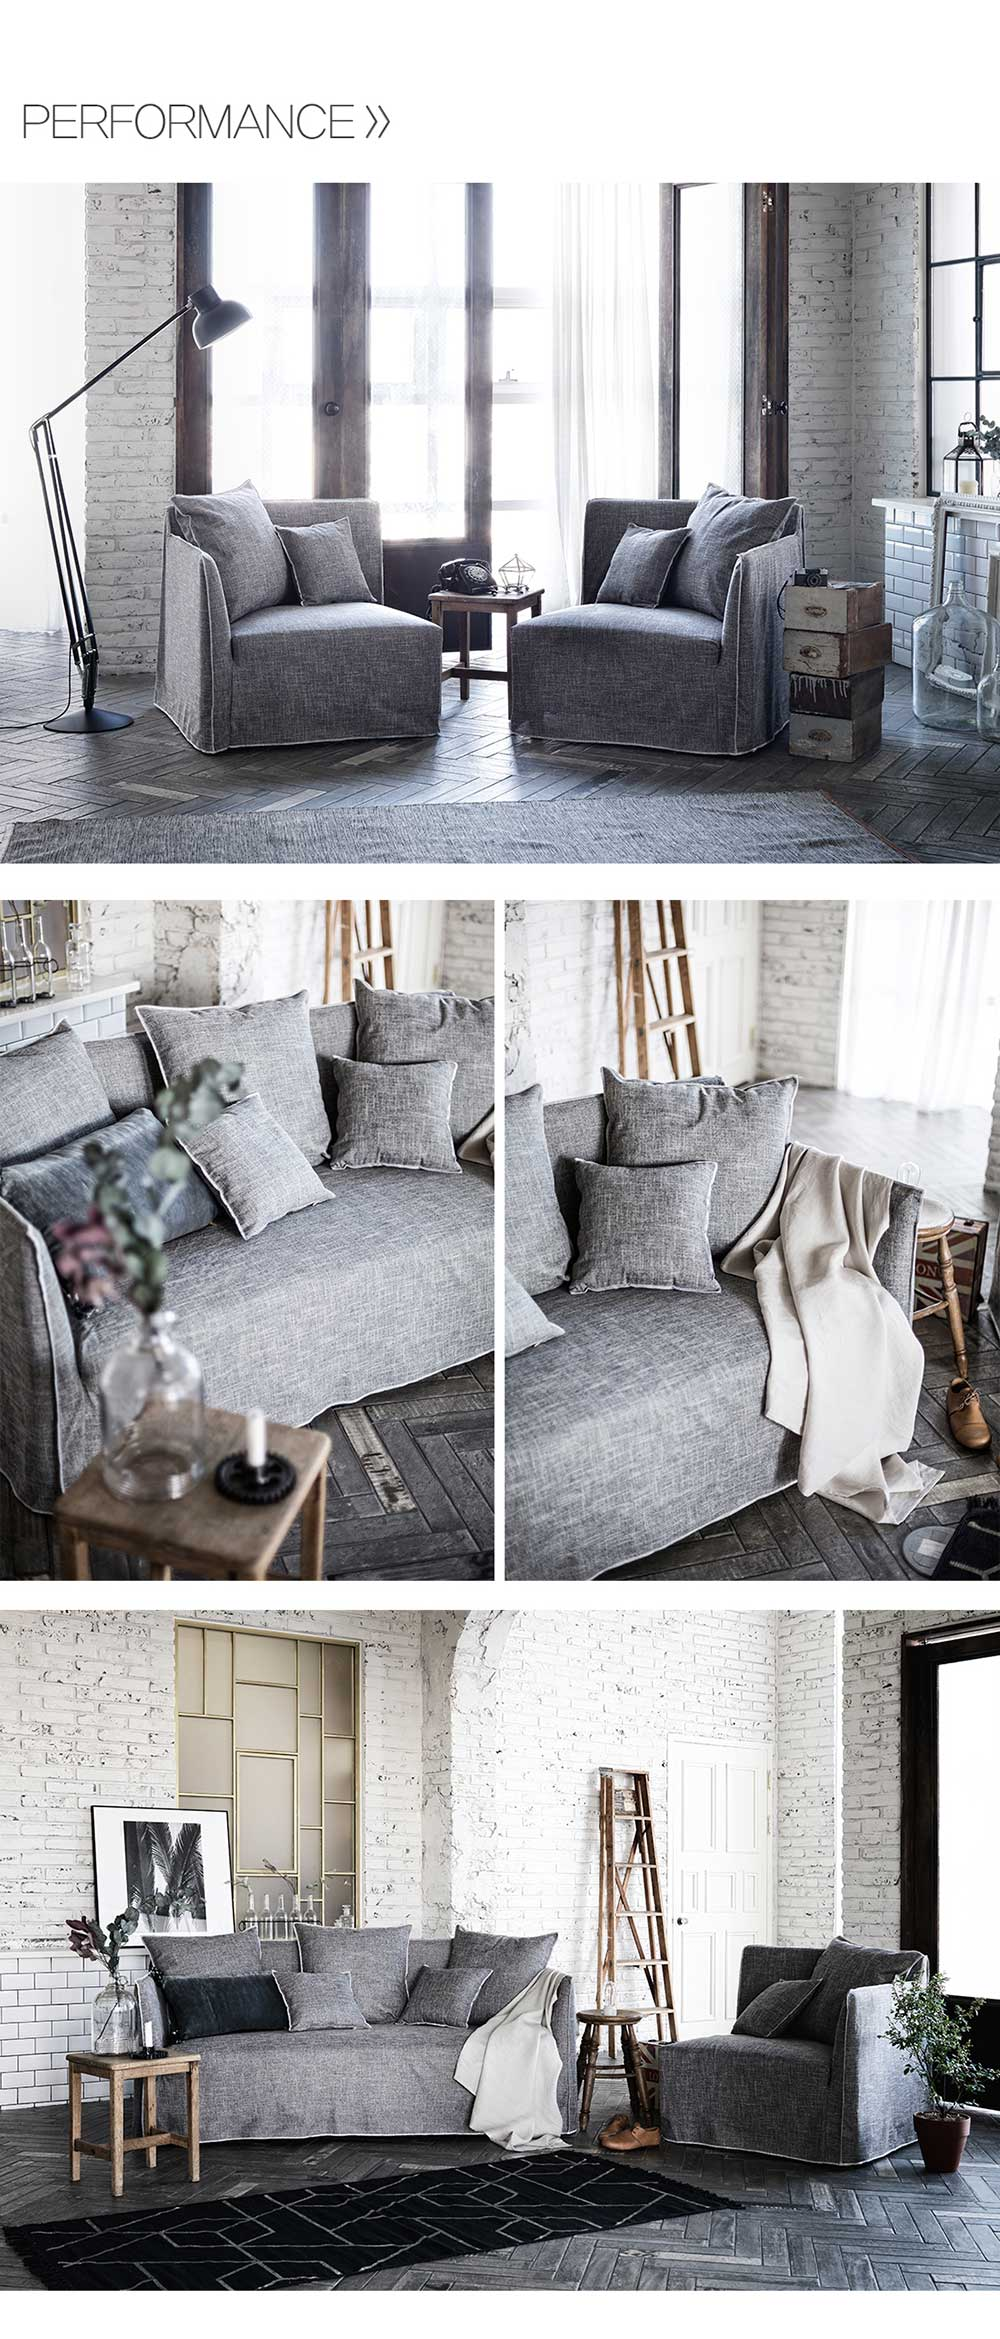 Londoner_Kinfolk_Industrial_Armchair_Sofa_(RIGHT)_(White Black)_Furniture_Online_Singapore_6_by_born_in_colour